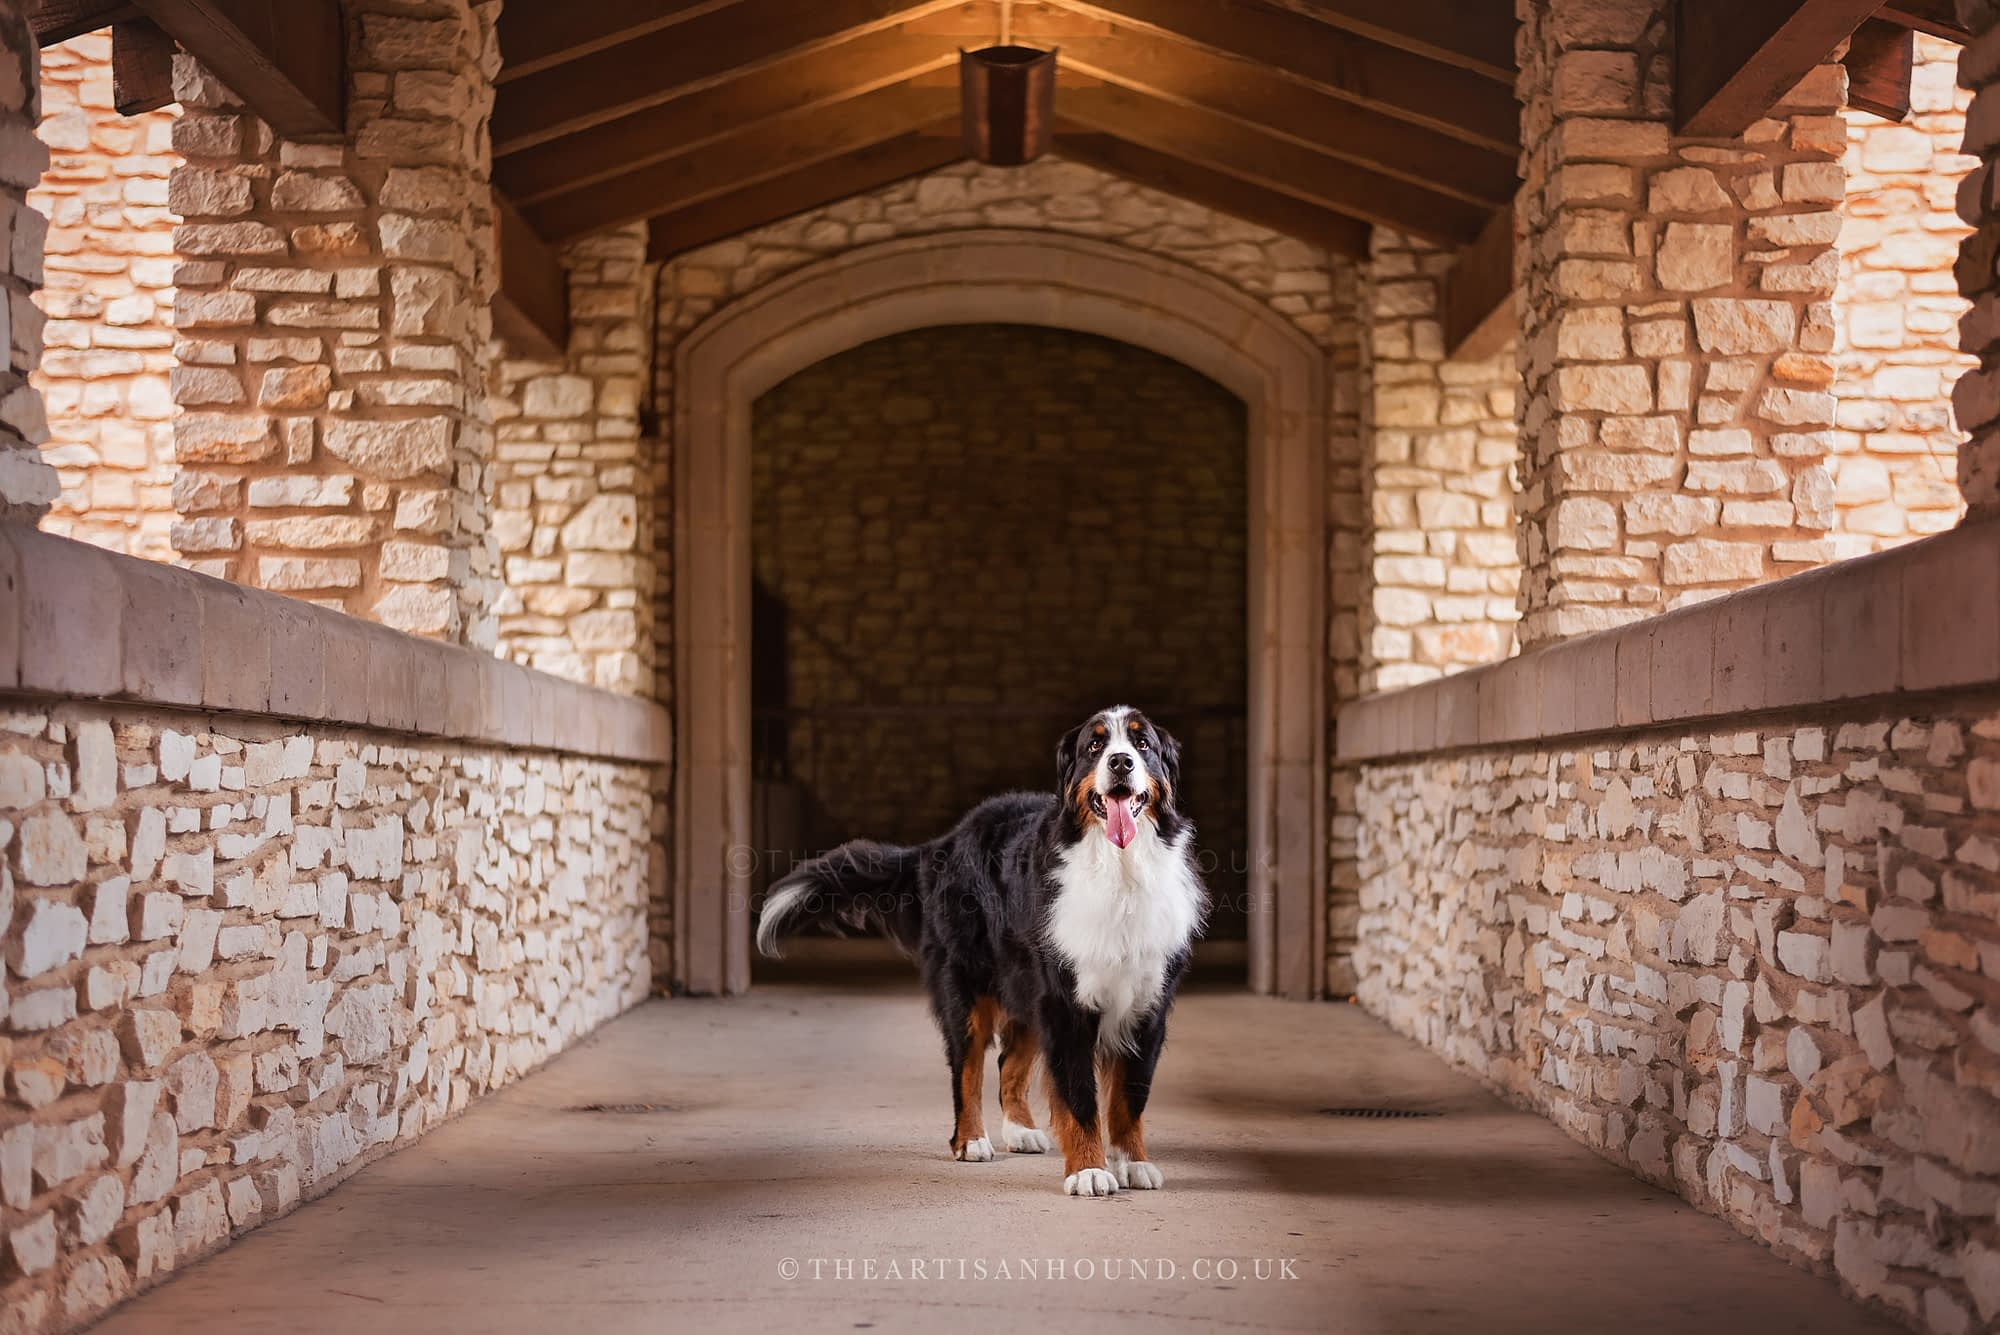 Bernese mountain dog standing in rustic urban archway